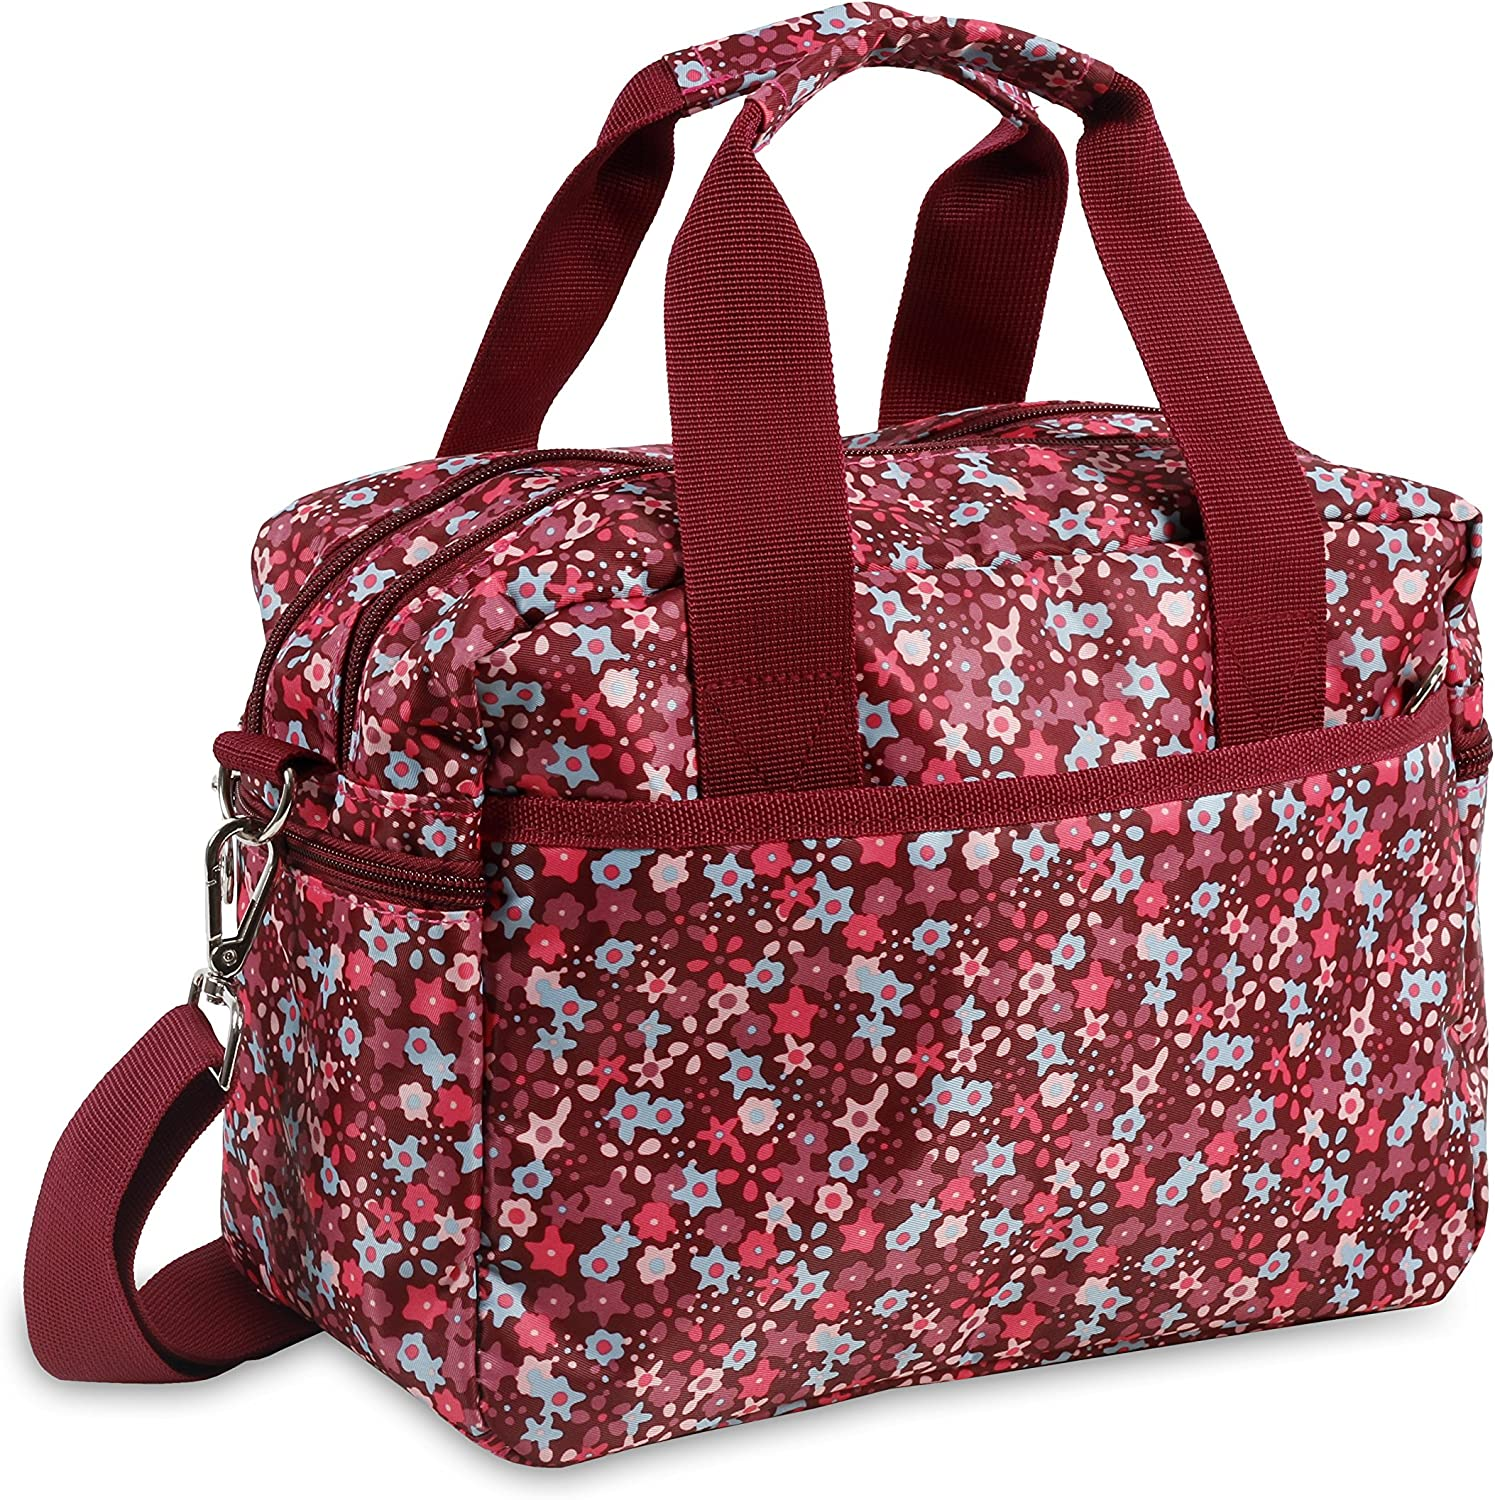 J World New York Aby Bag Travel Tote, Pink Floret, One Size